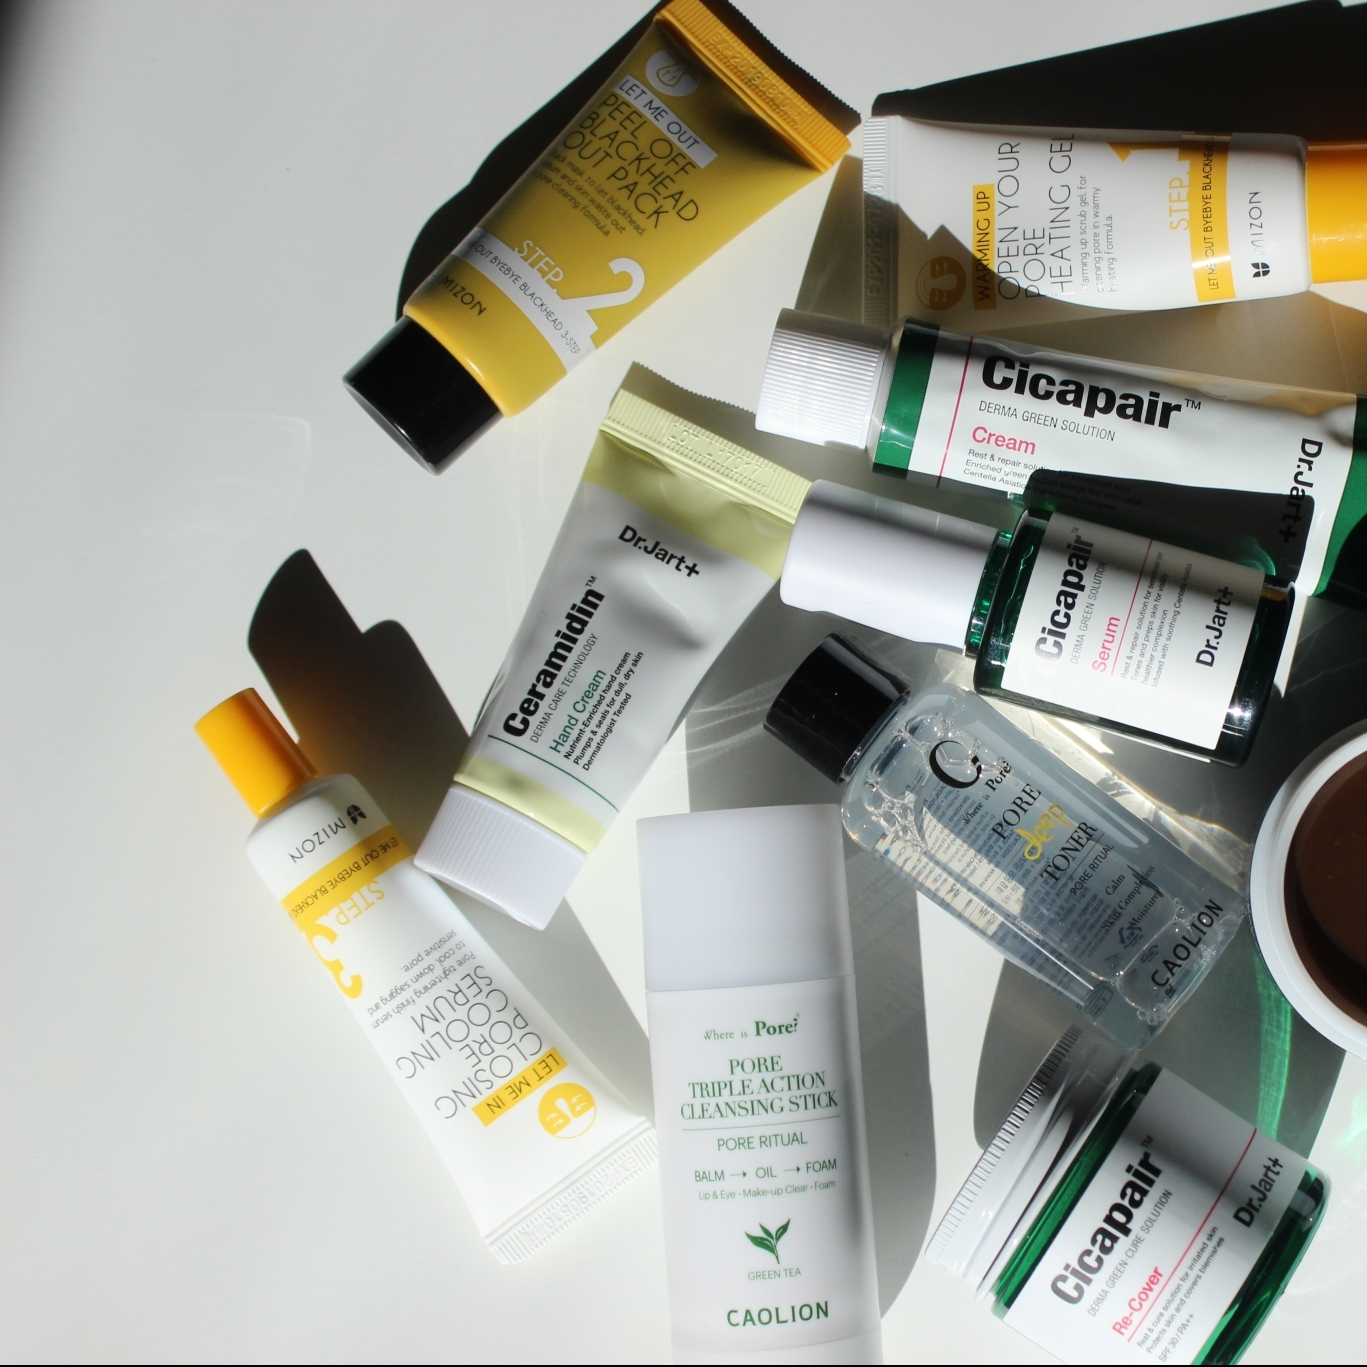 The Best of Korean Skin Care, According to You